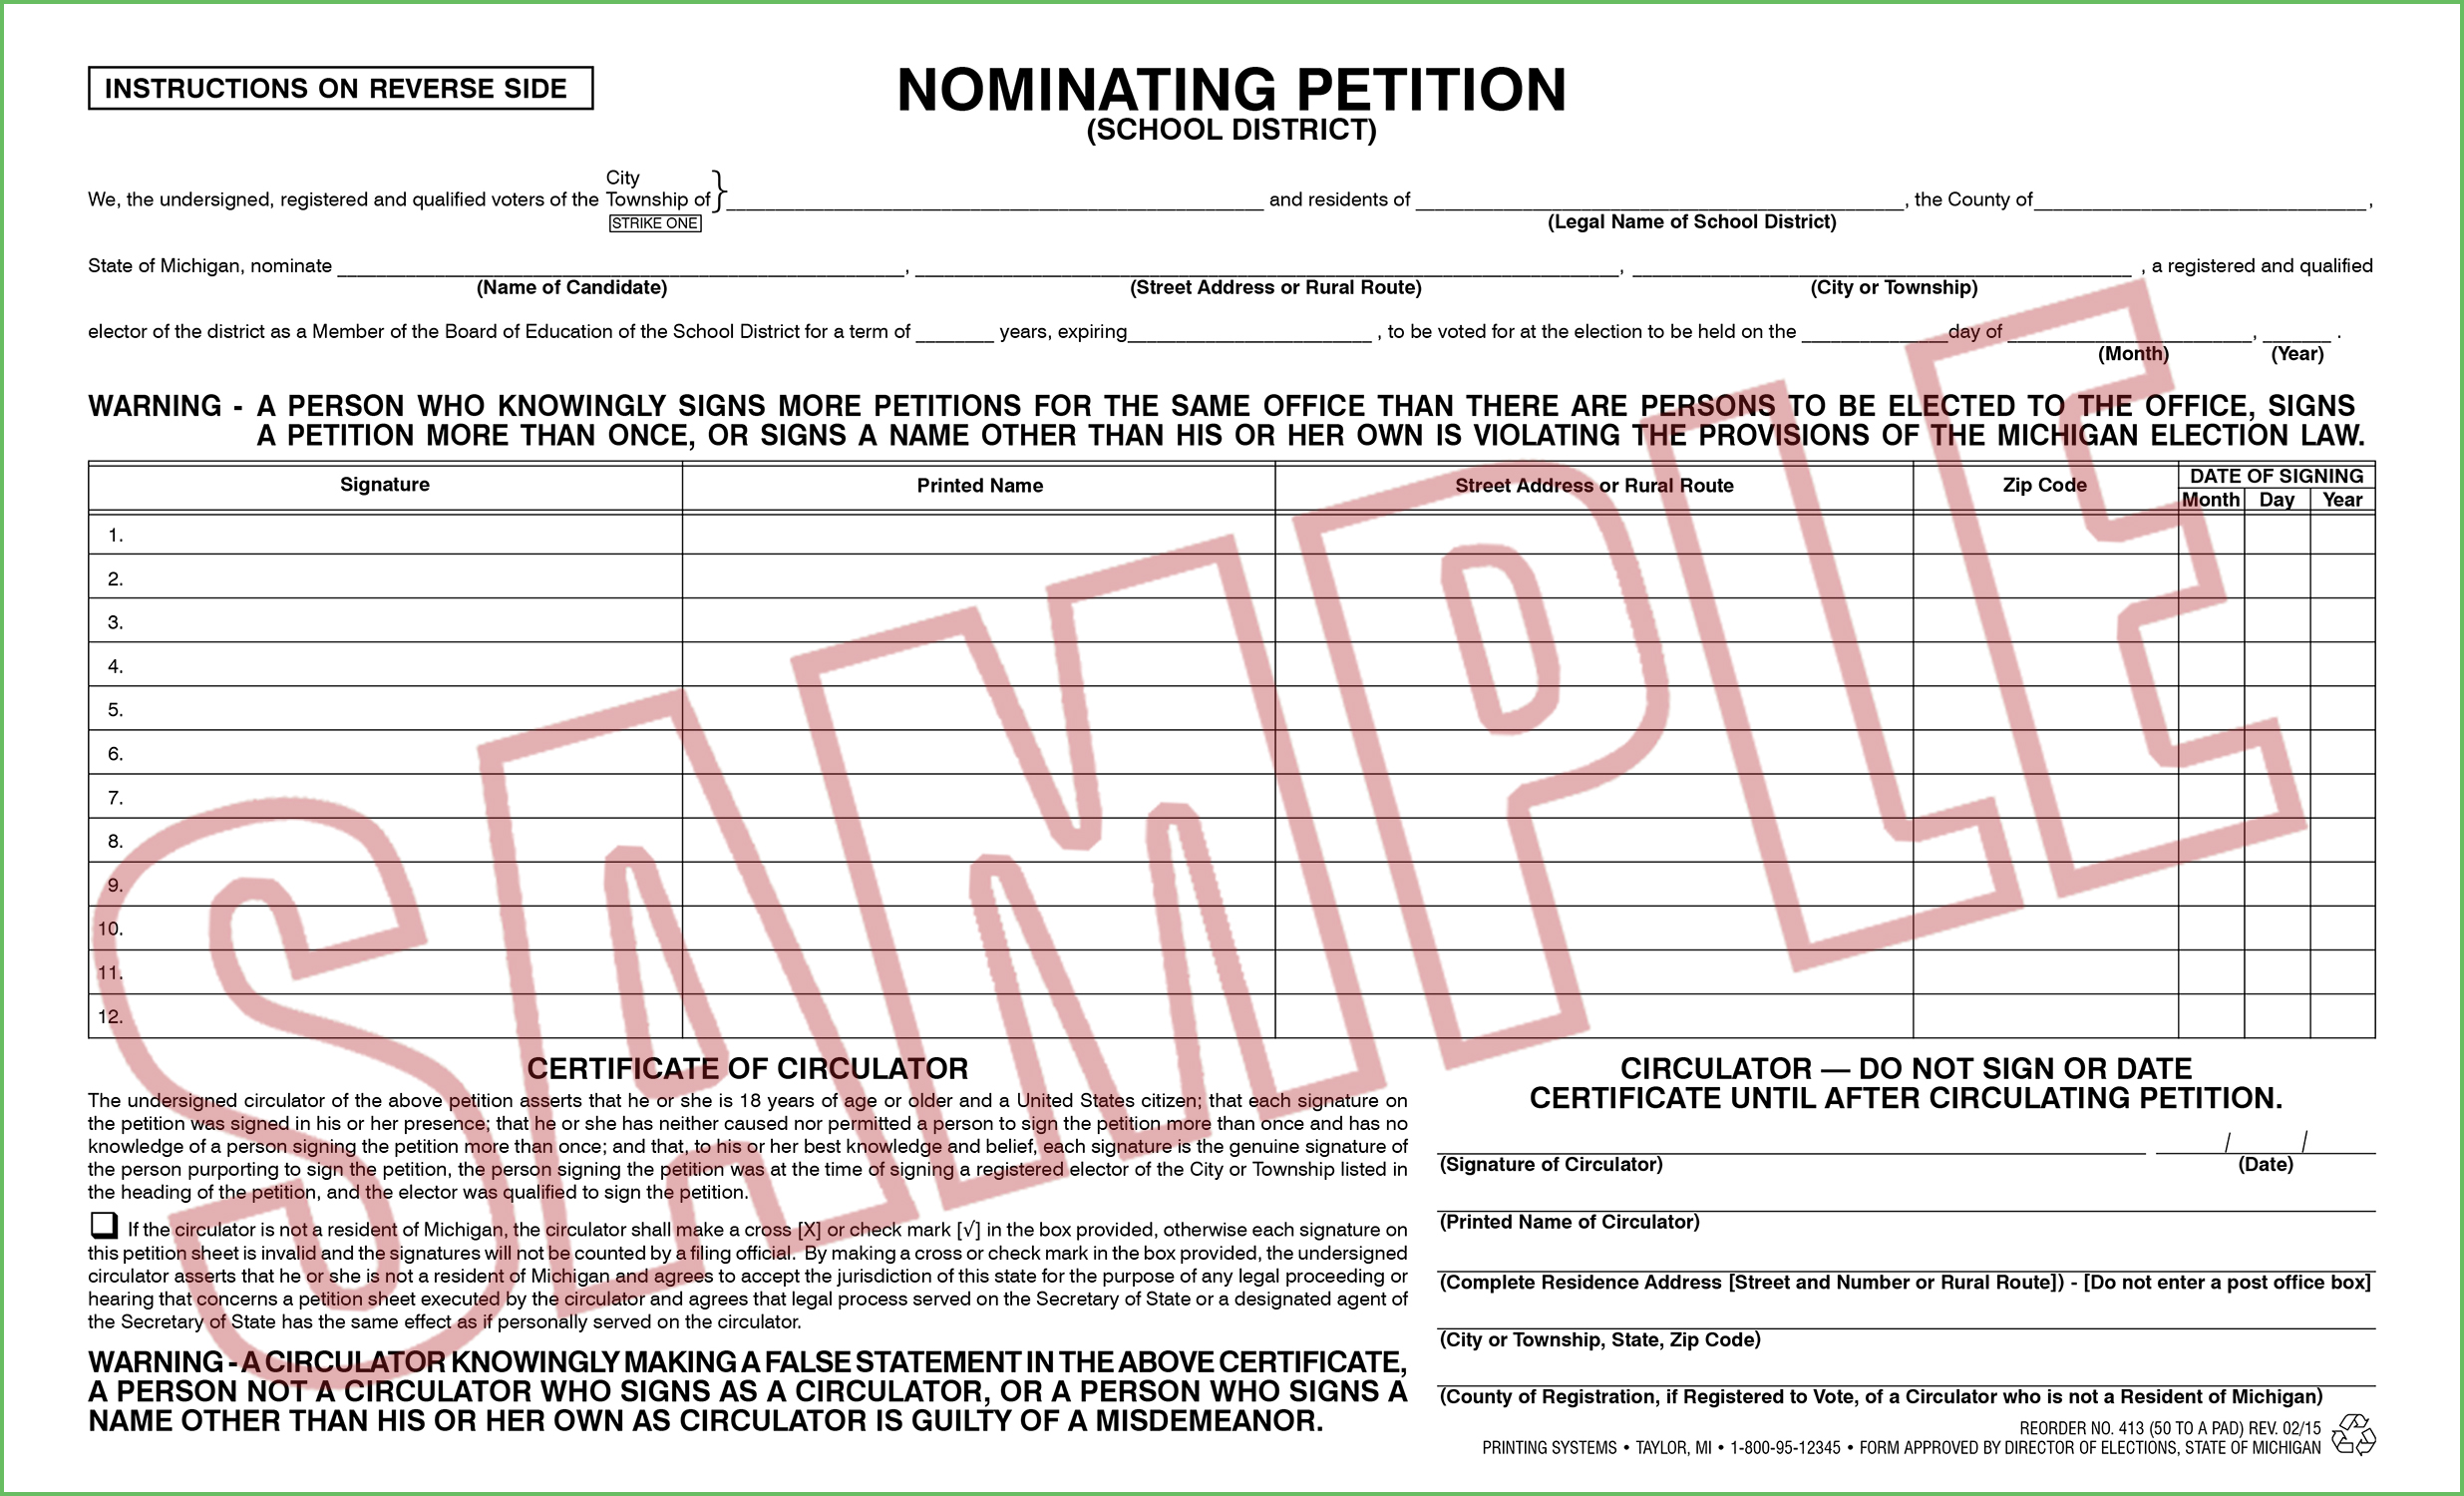 413 Nominating Petition (School District) (50 per pad)